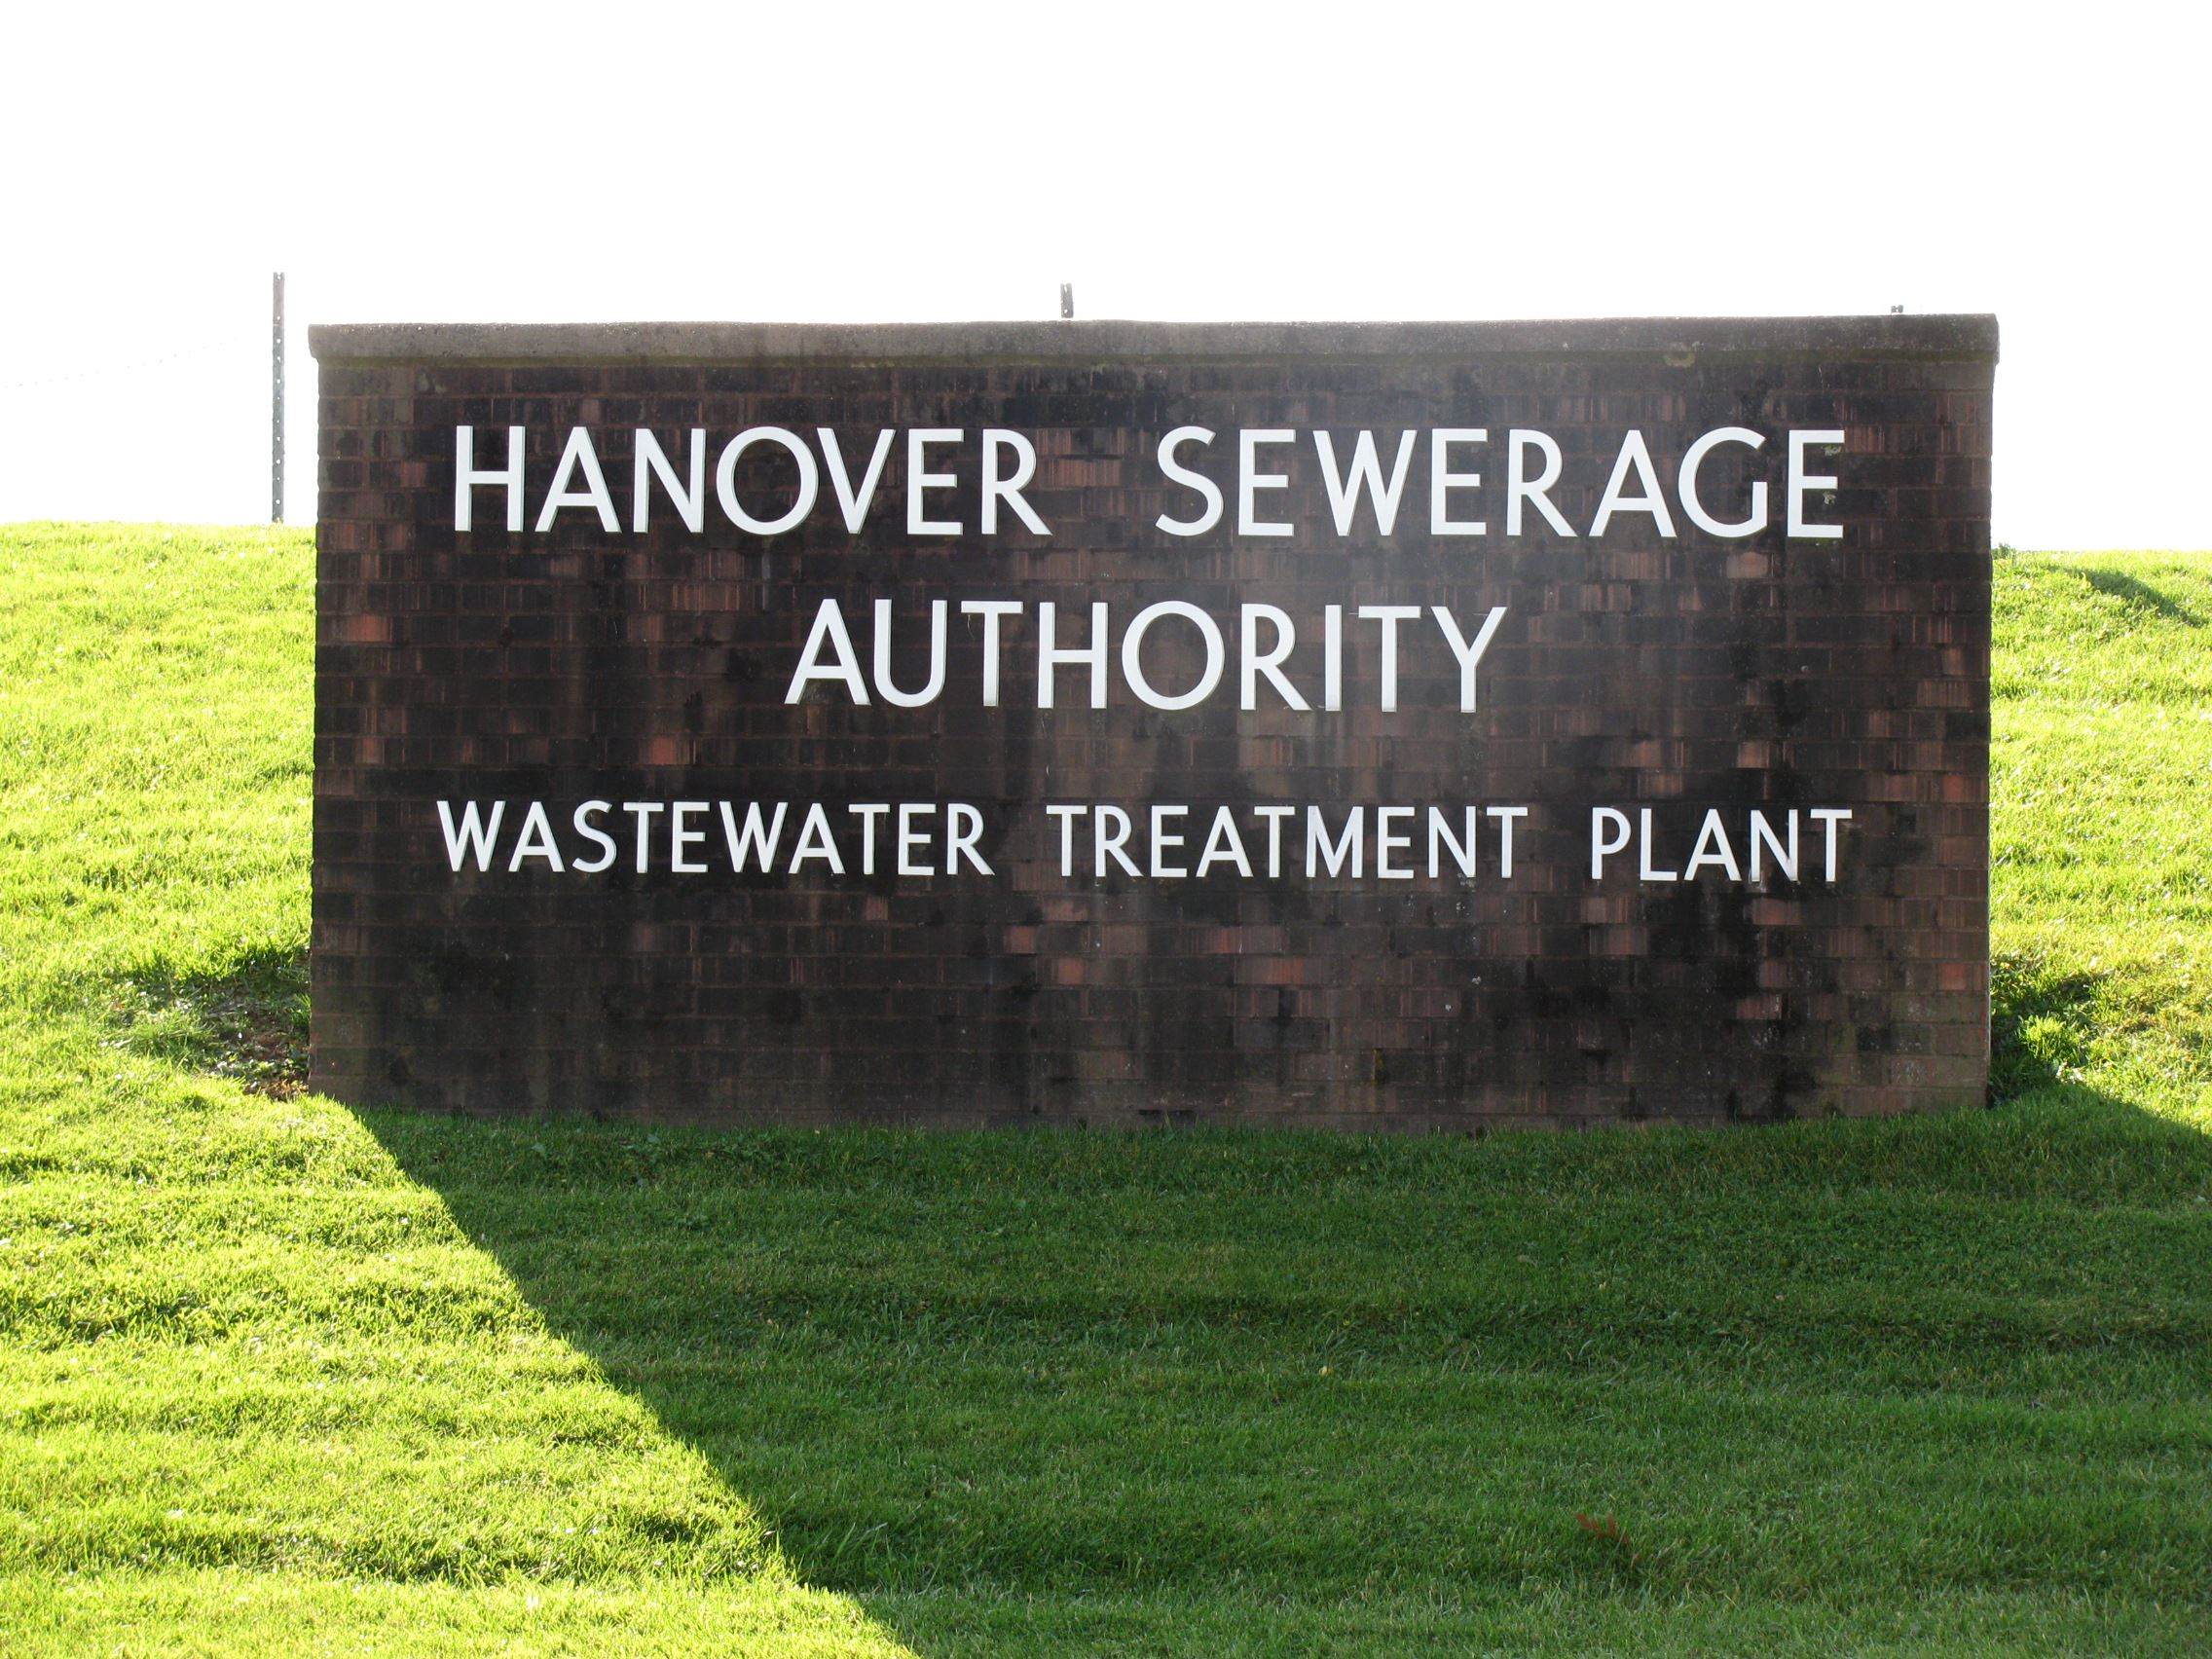 Hanover Sewerage Authority Wastewater Treatment Plant